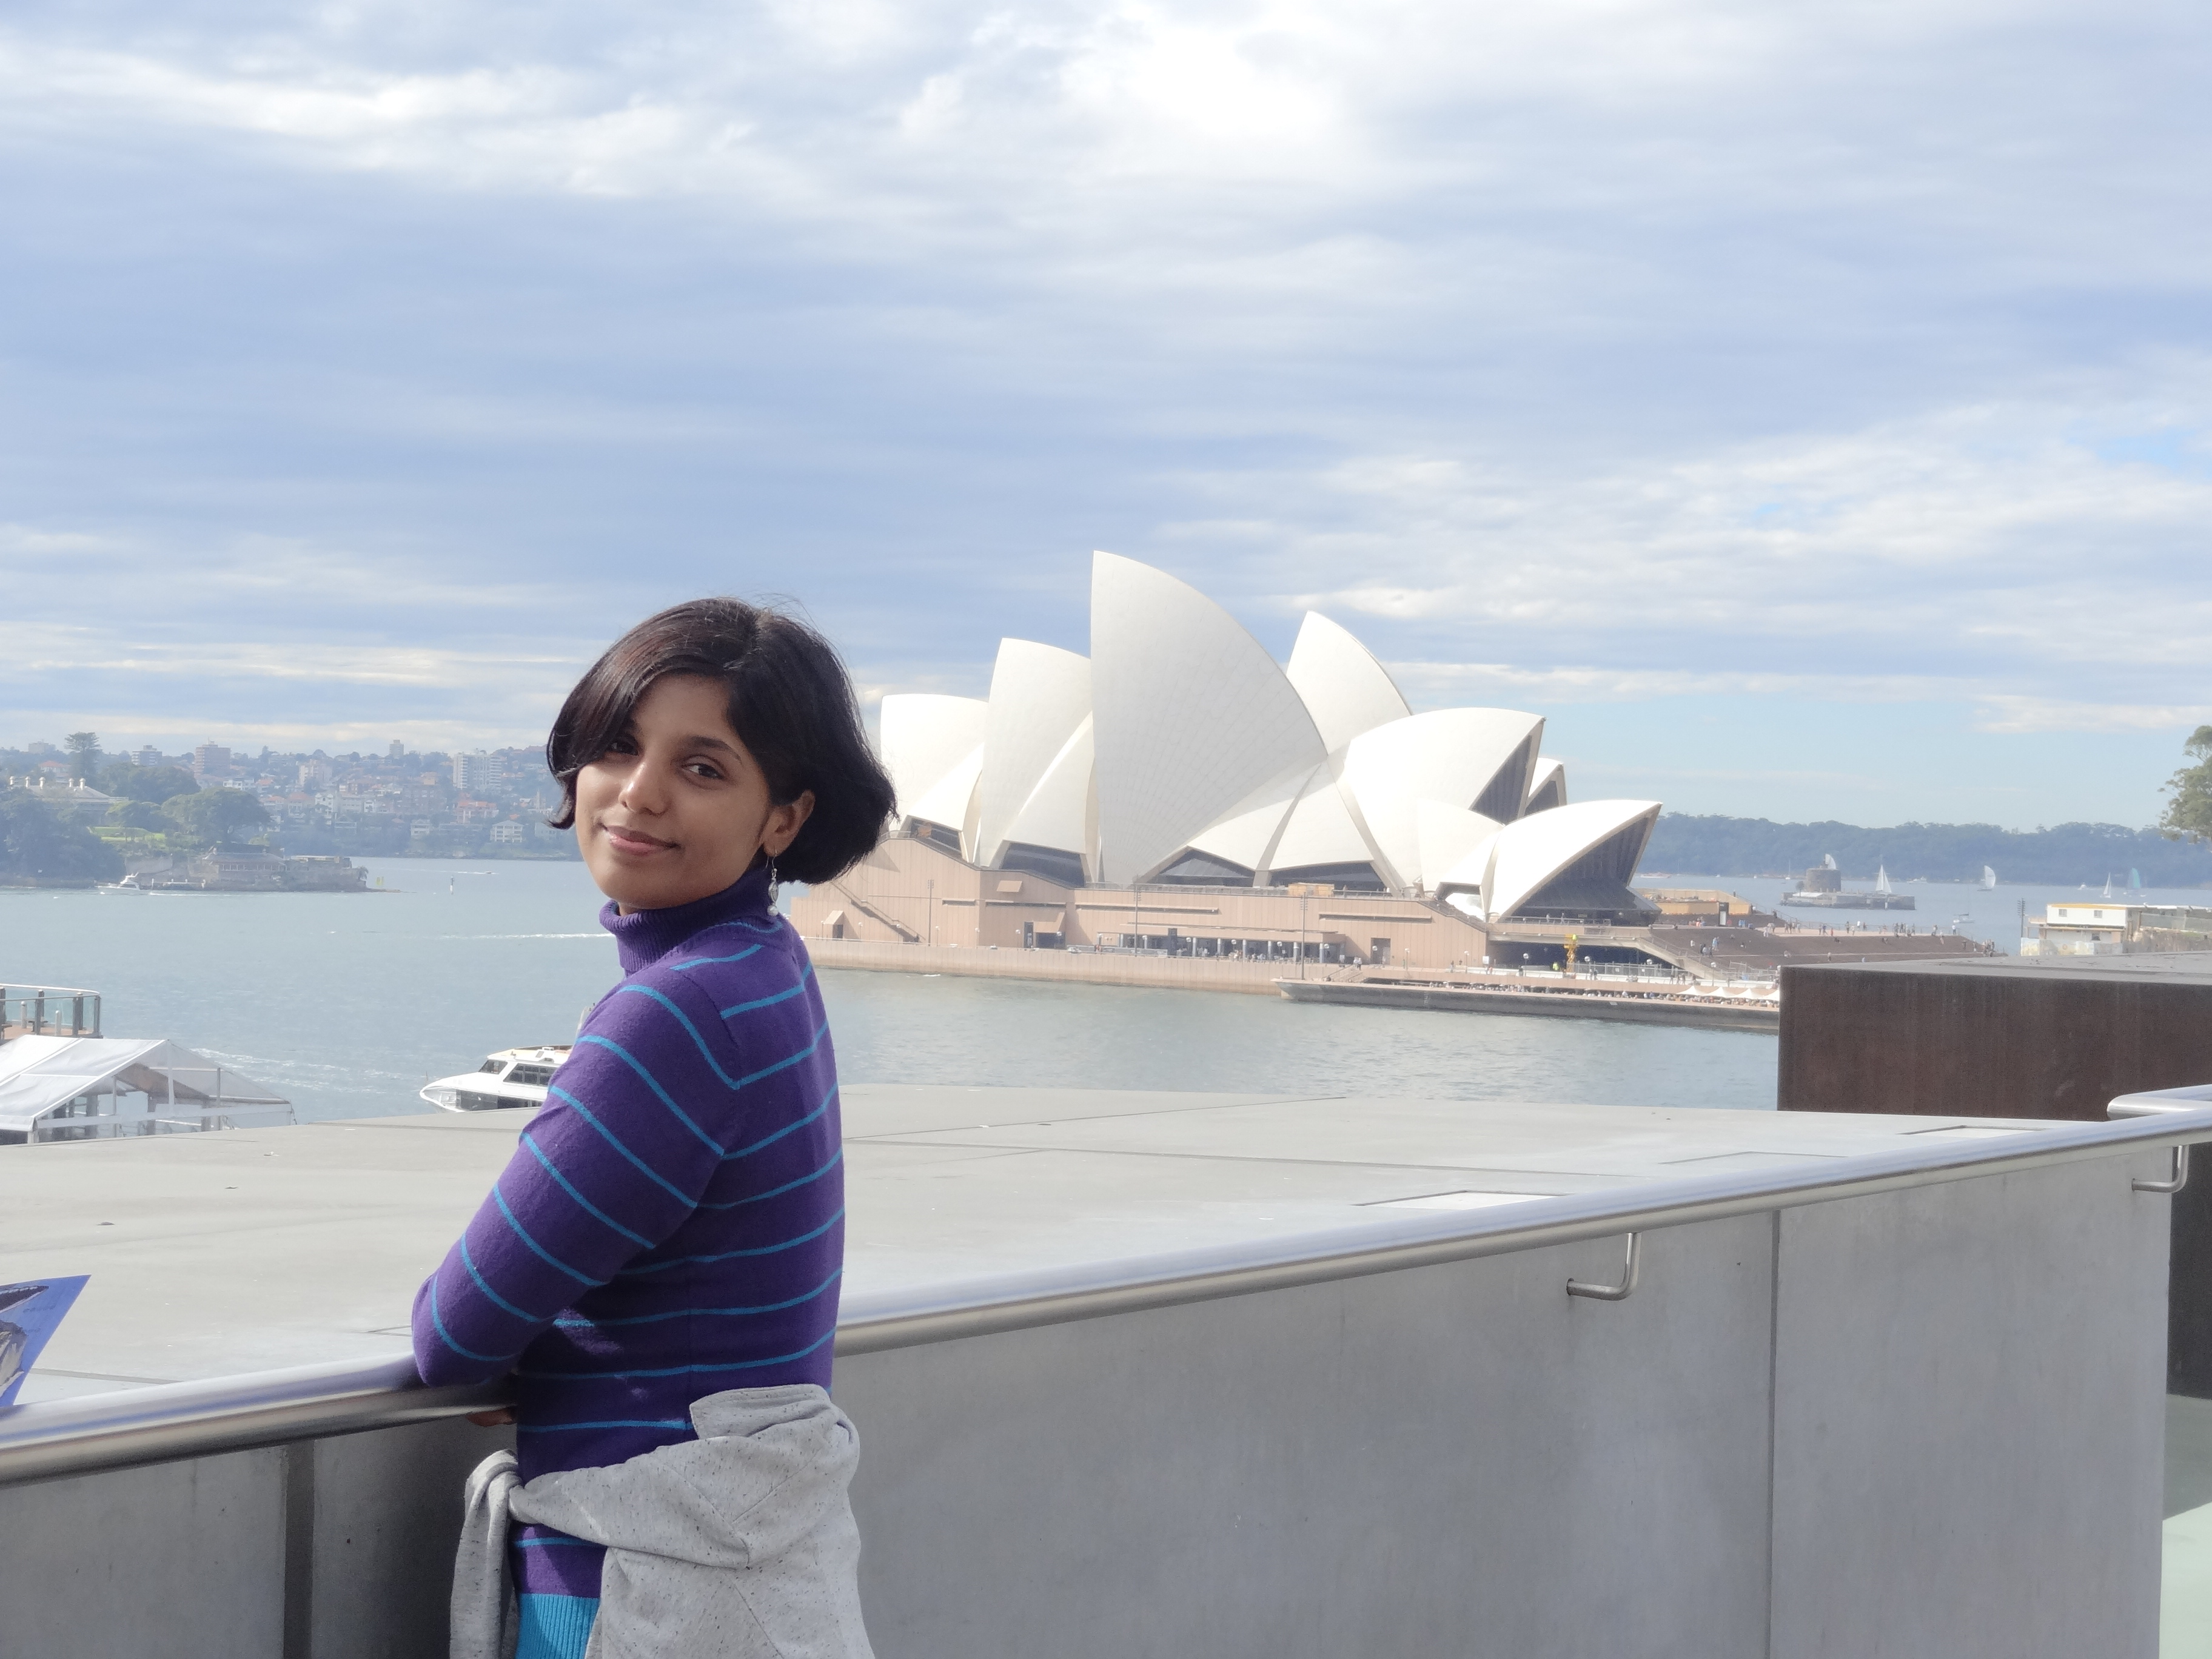 I saw Opera day and night and even during Vivid Sydney in lights. It was awesome. Pls read more here Sunrise @ Opera http://giriyana.blogspot.in/2014_05_01_archive.html